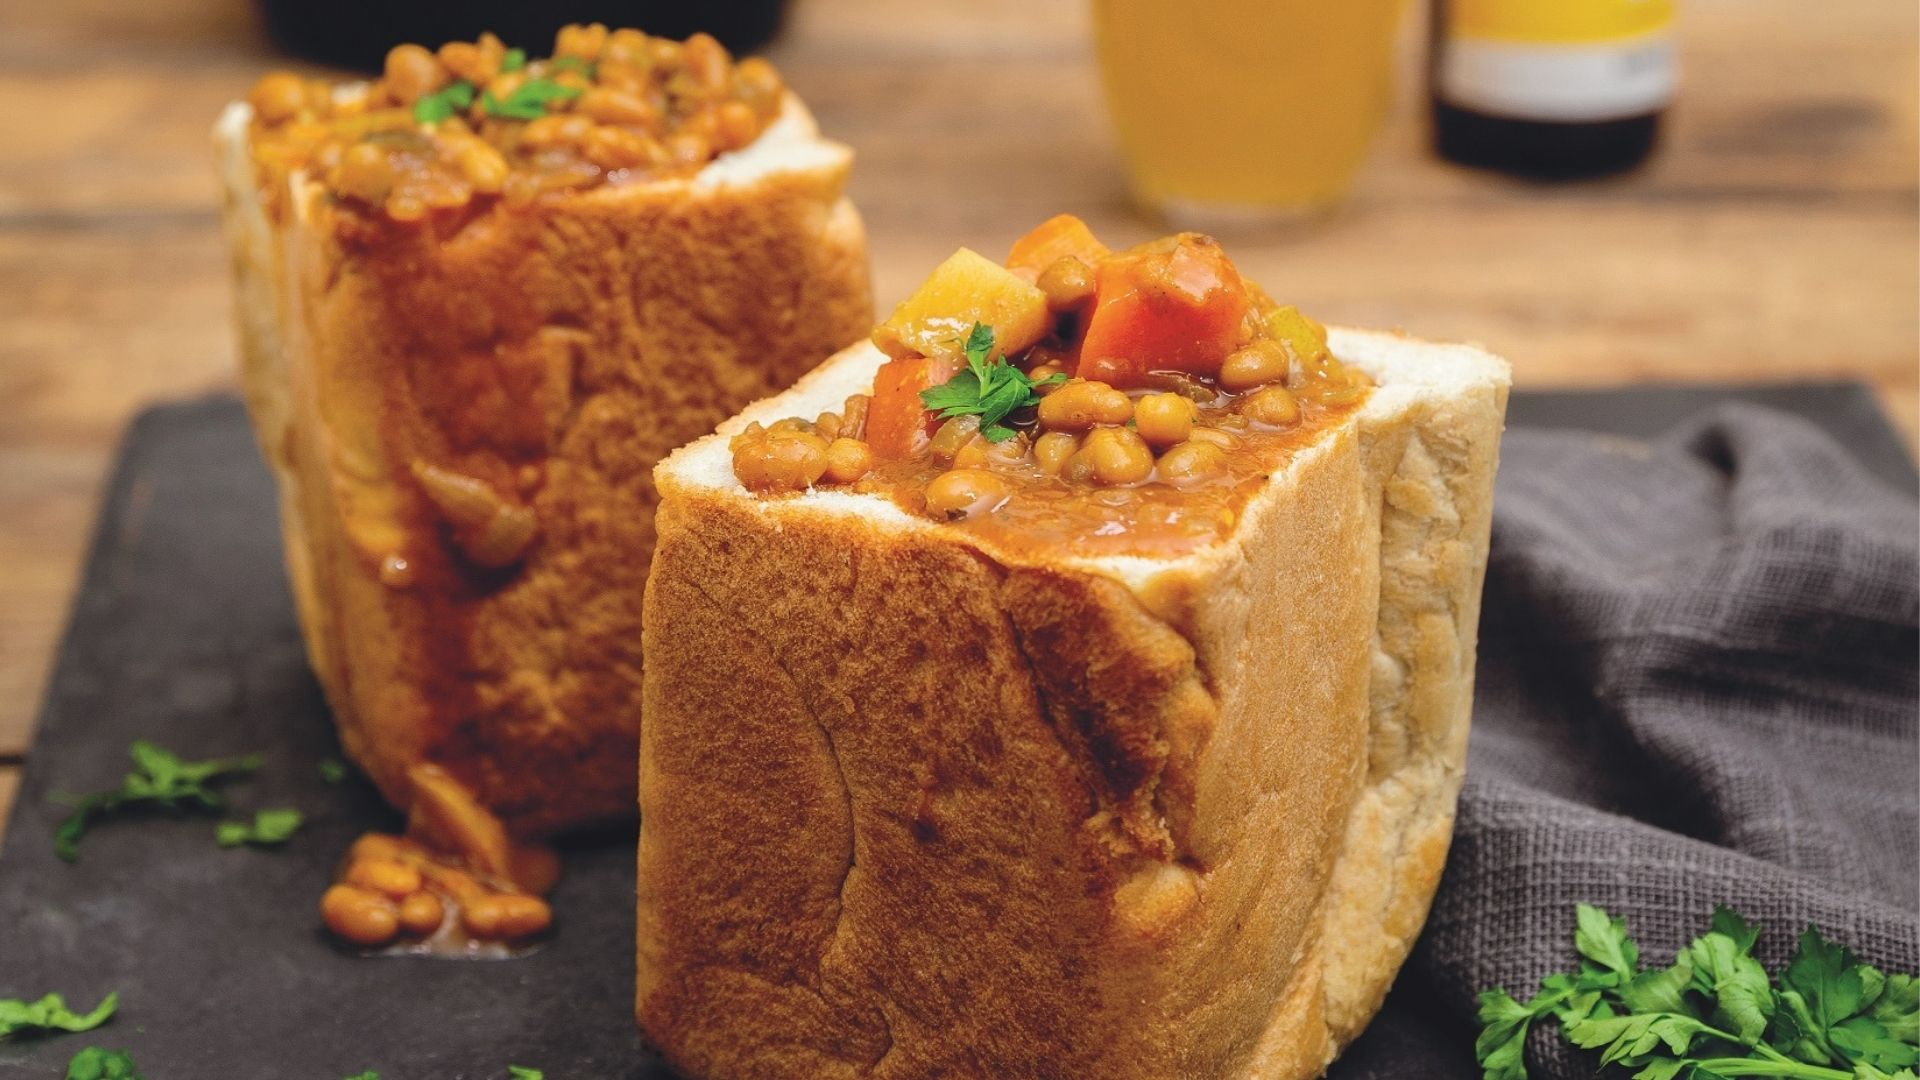 A delicious recipe for baked bean bunny chow by Jan Braai.